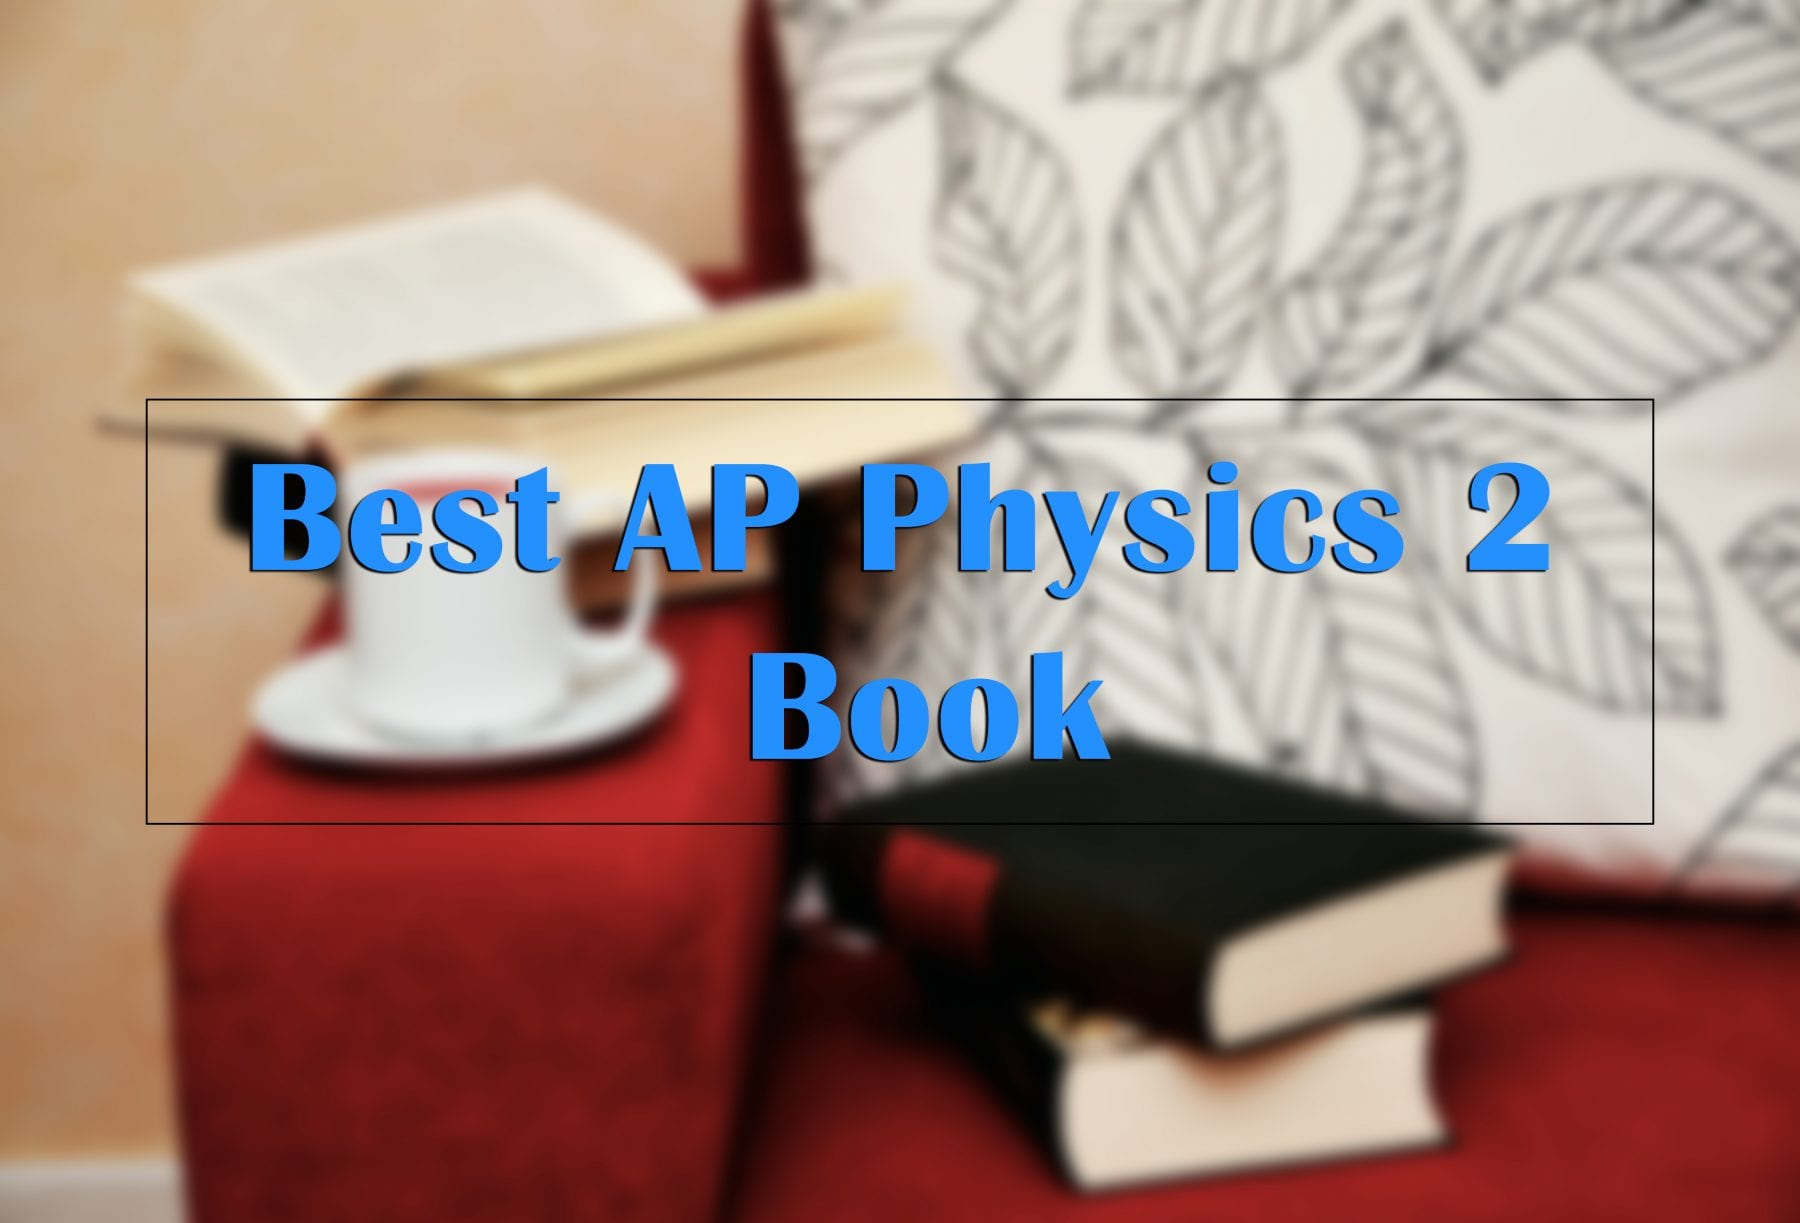 Score a 5 with the Best AP Physics 2 Book - [UPDATED 2019]